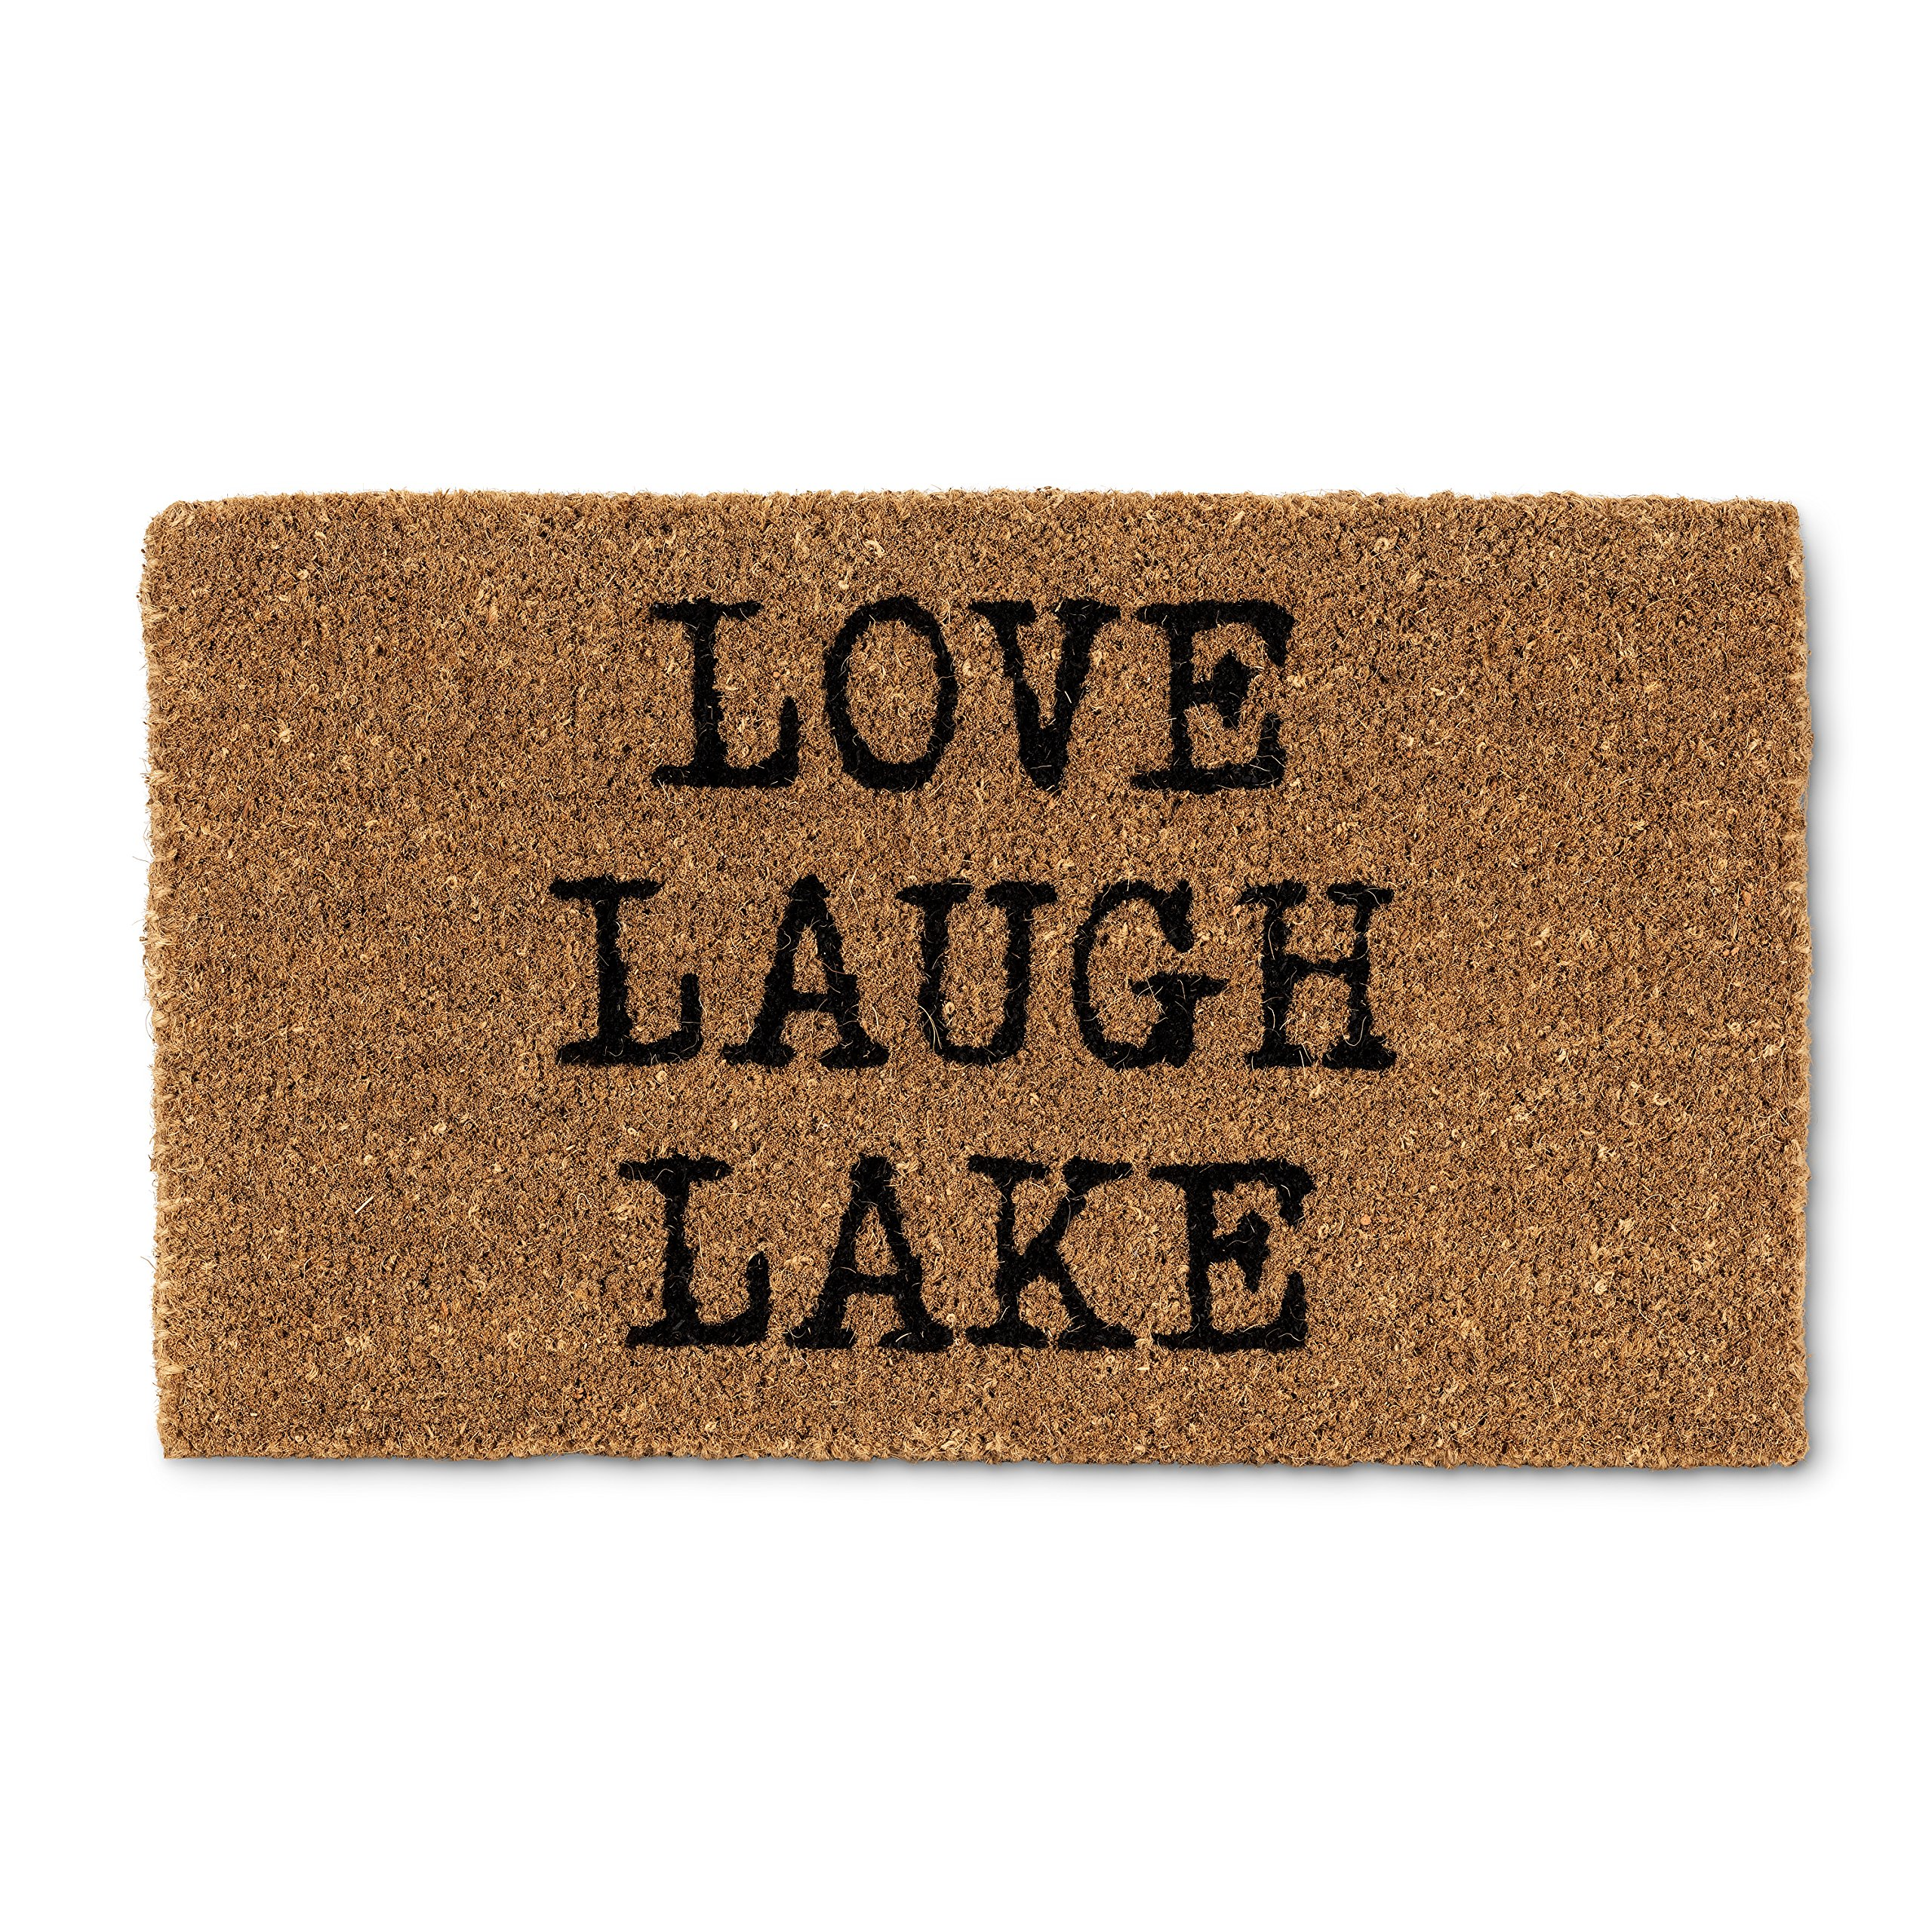 Abbott Collection 1235-Fwd/Love Love, Laugh, Lake Doormat